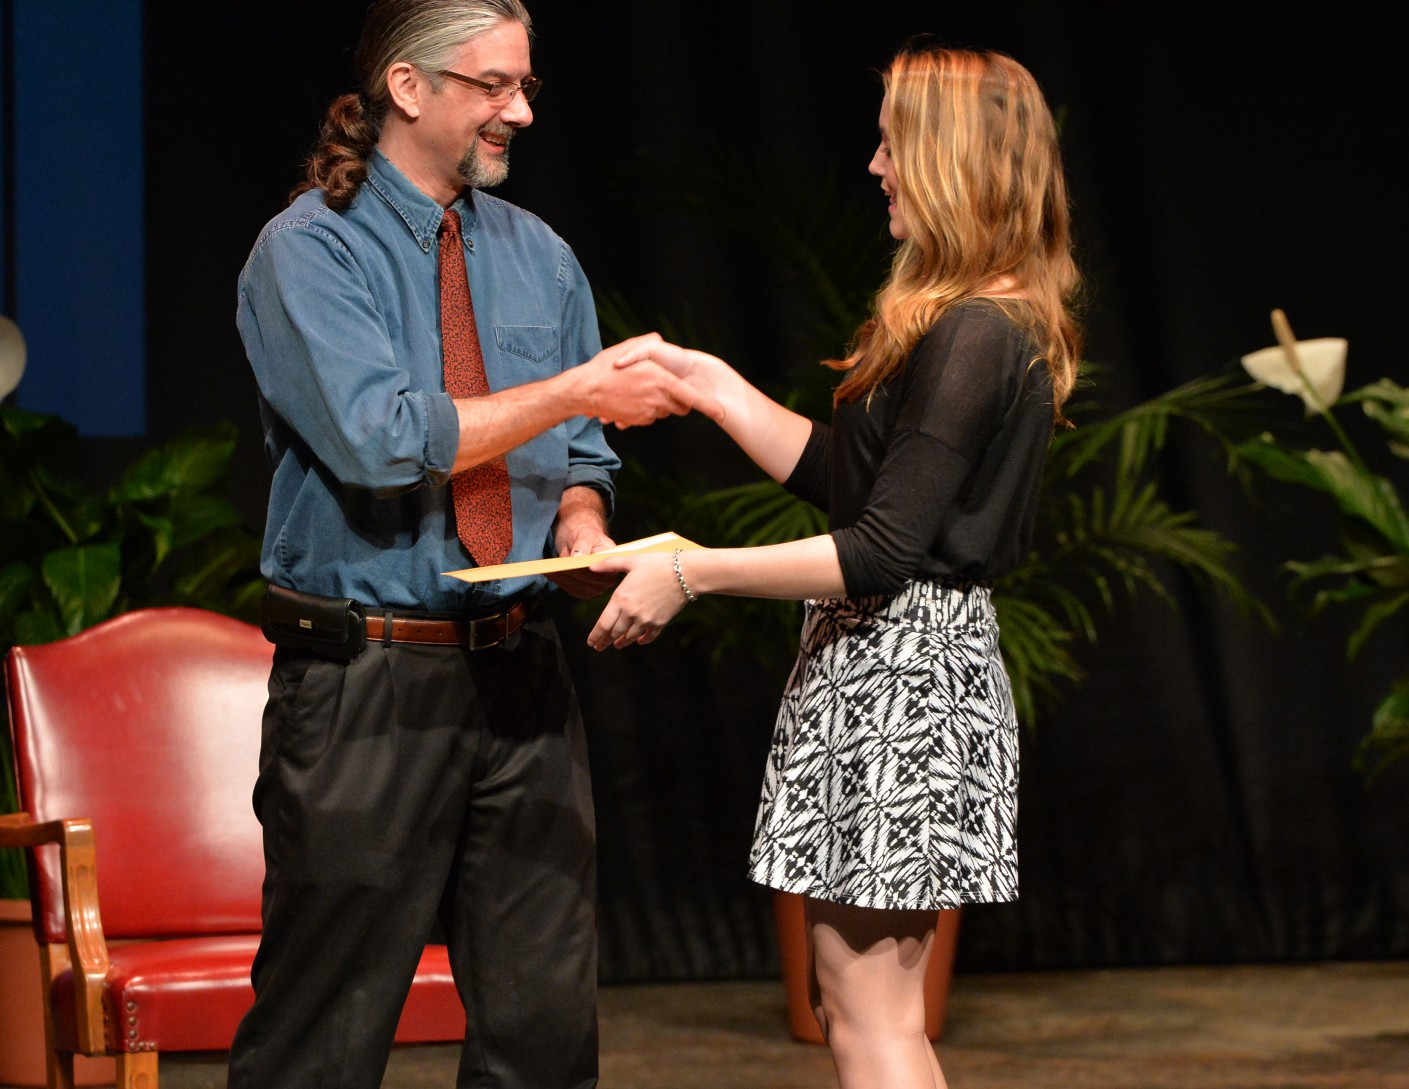 Dr. Brian A. Hoey (Anthropology) presents an award to program major Clarissa Bonnefond at the 2015 Honors Convocation